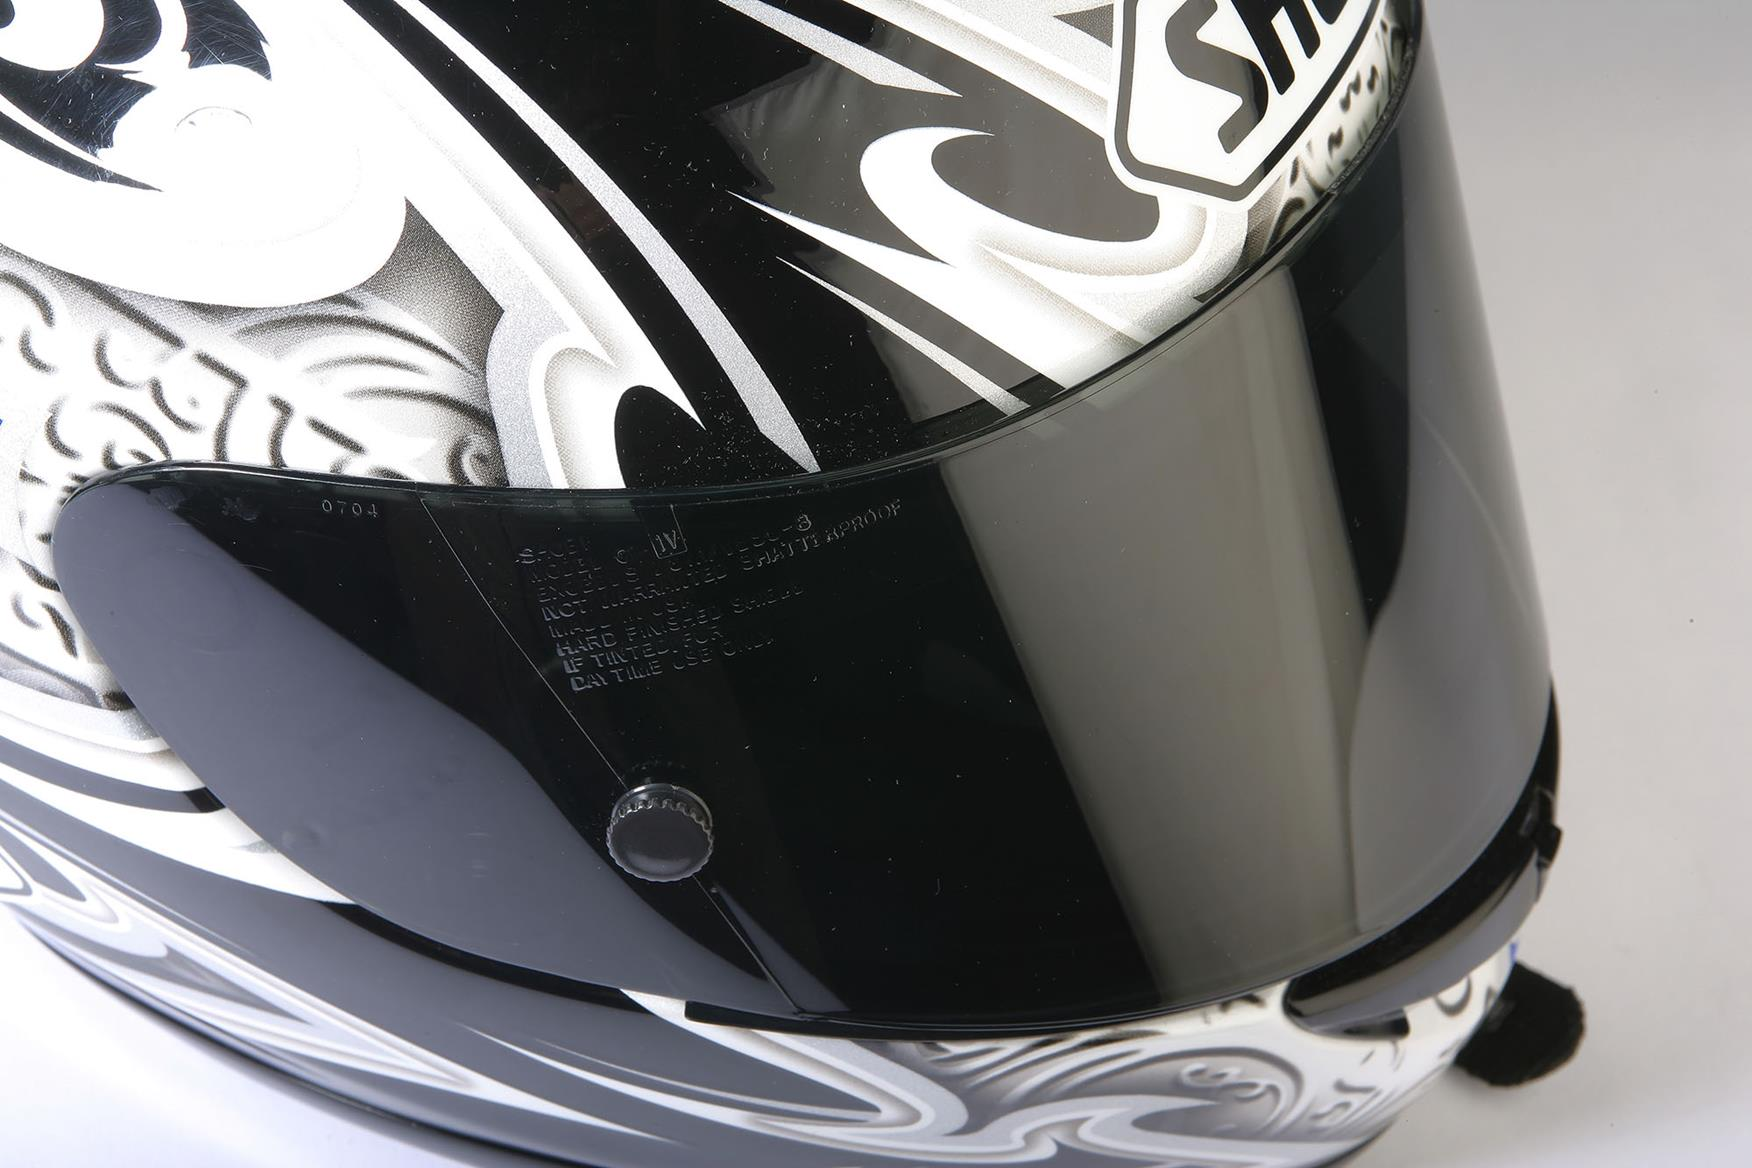 Whether your visor is 'tinted' or 'dark' makes all the difference legally